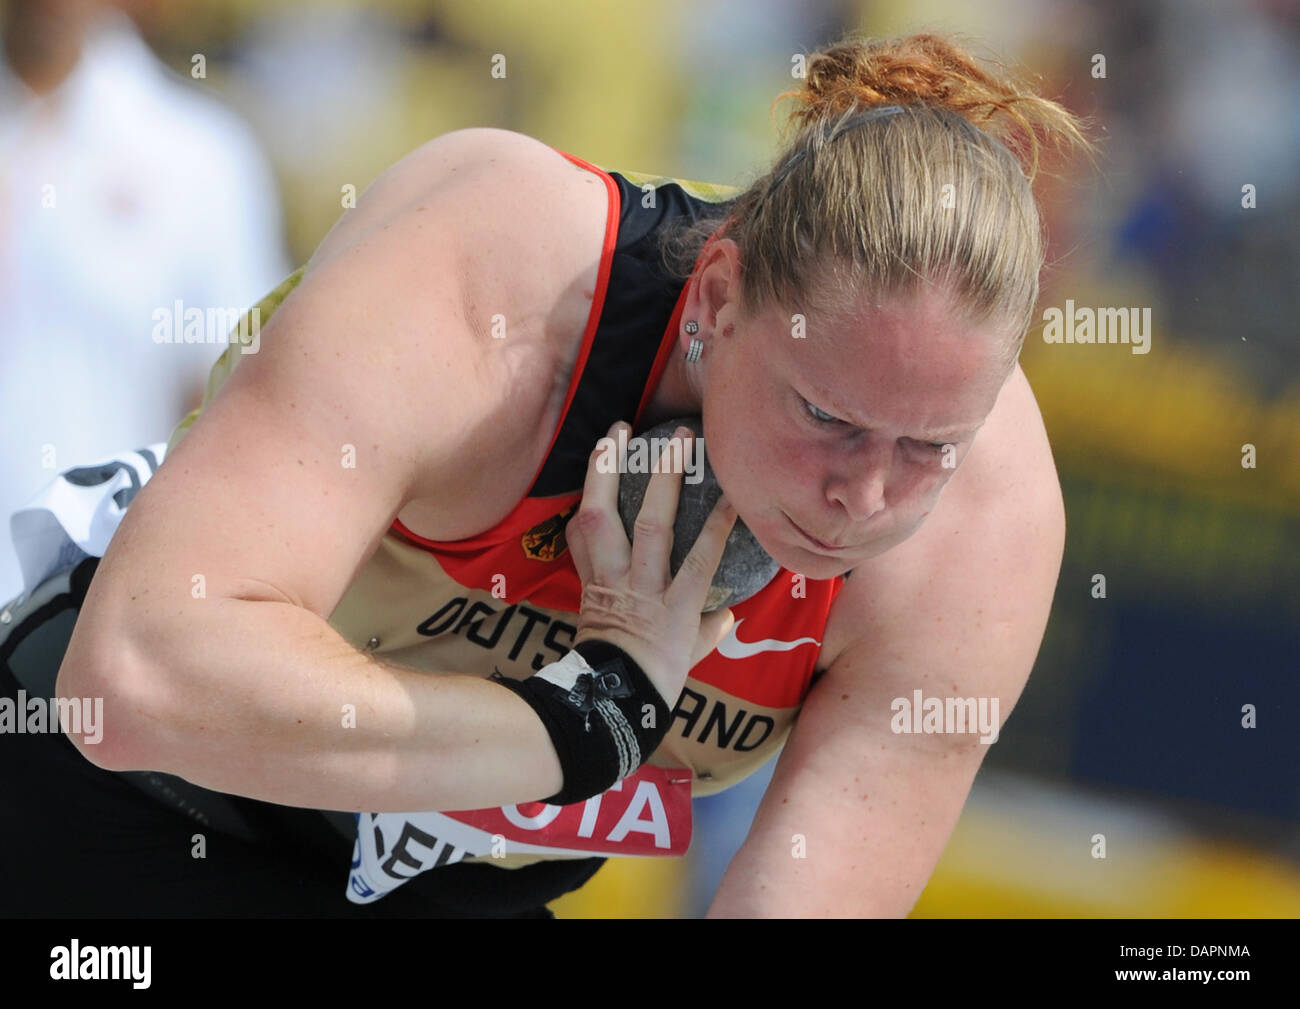 Nadine Kleinert of Germany competes in the Women's Shot Put Qualification at the 13th IAAF World Championships - Stock Image